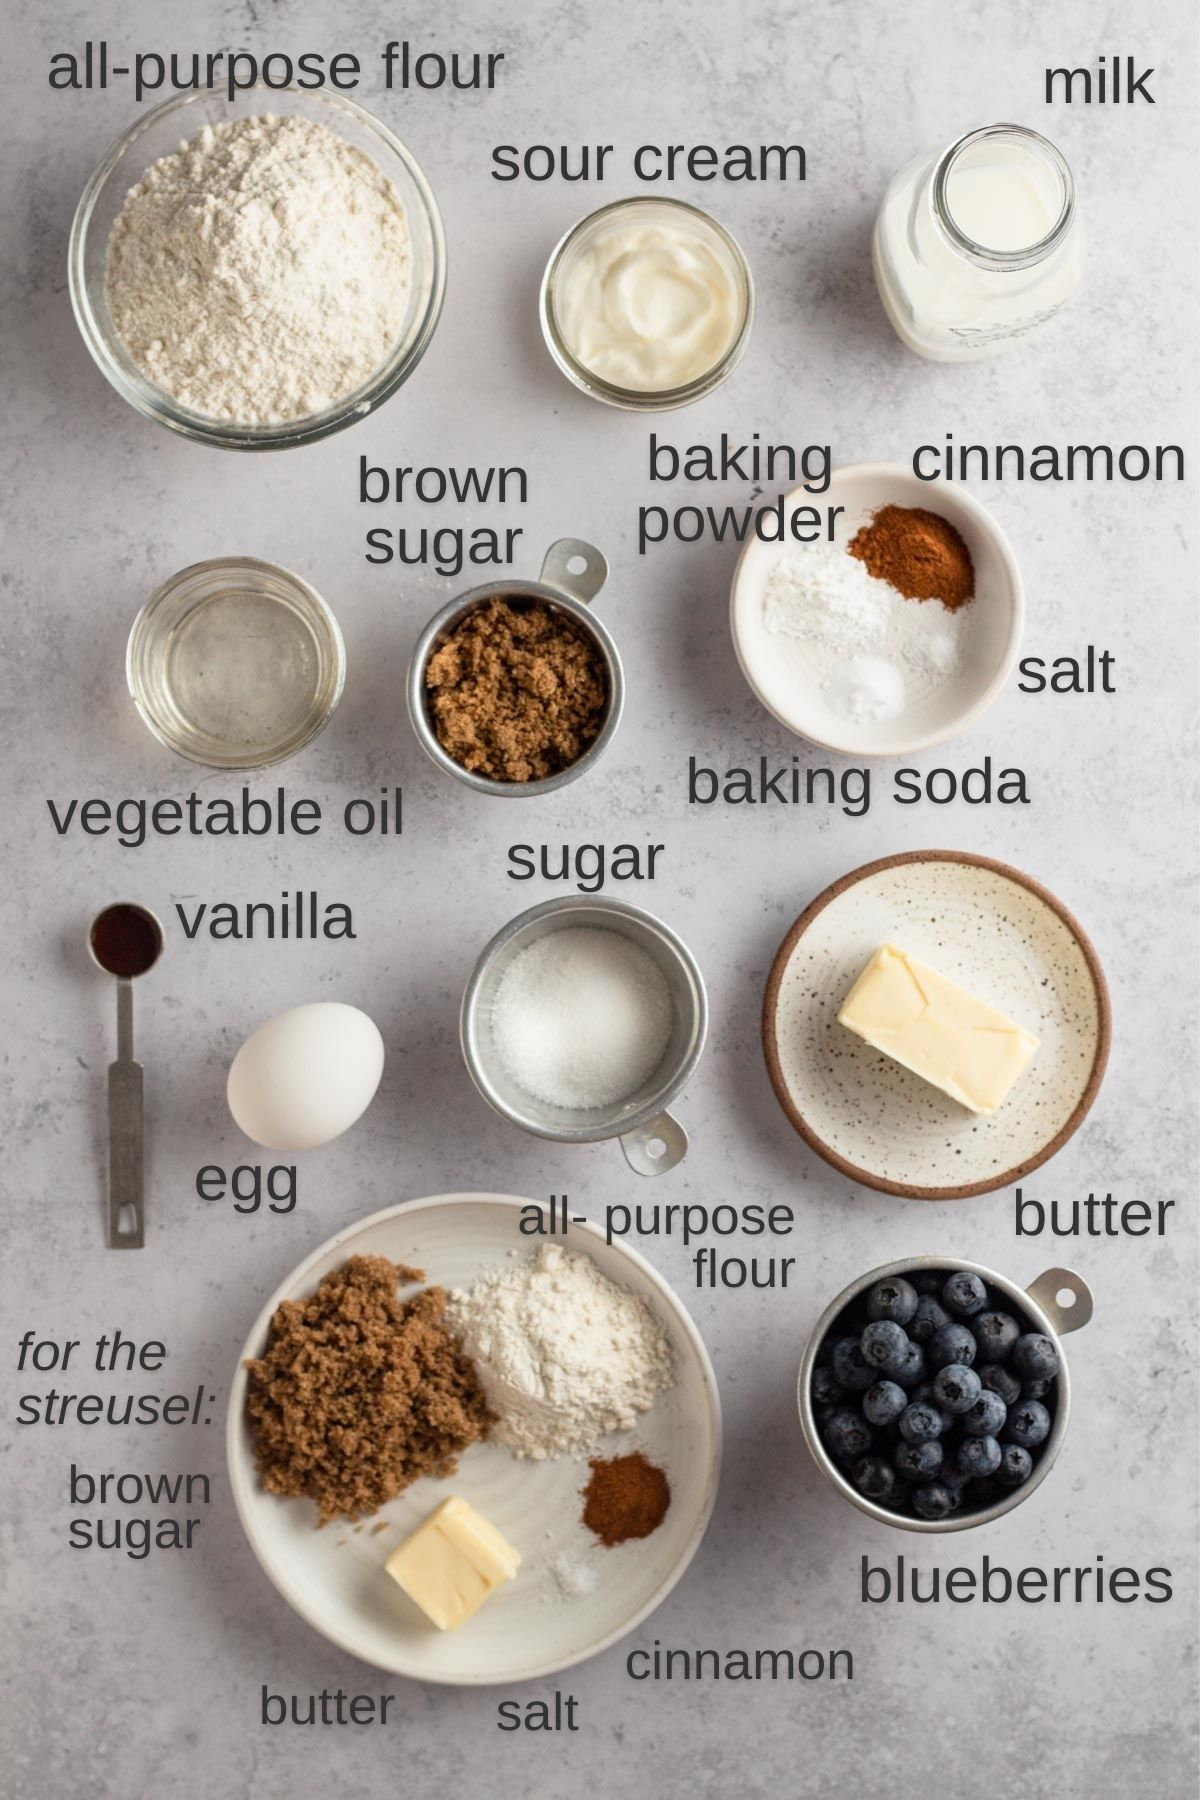 overhead view of recipe ingredients on a gray surface